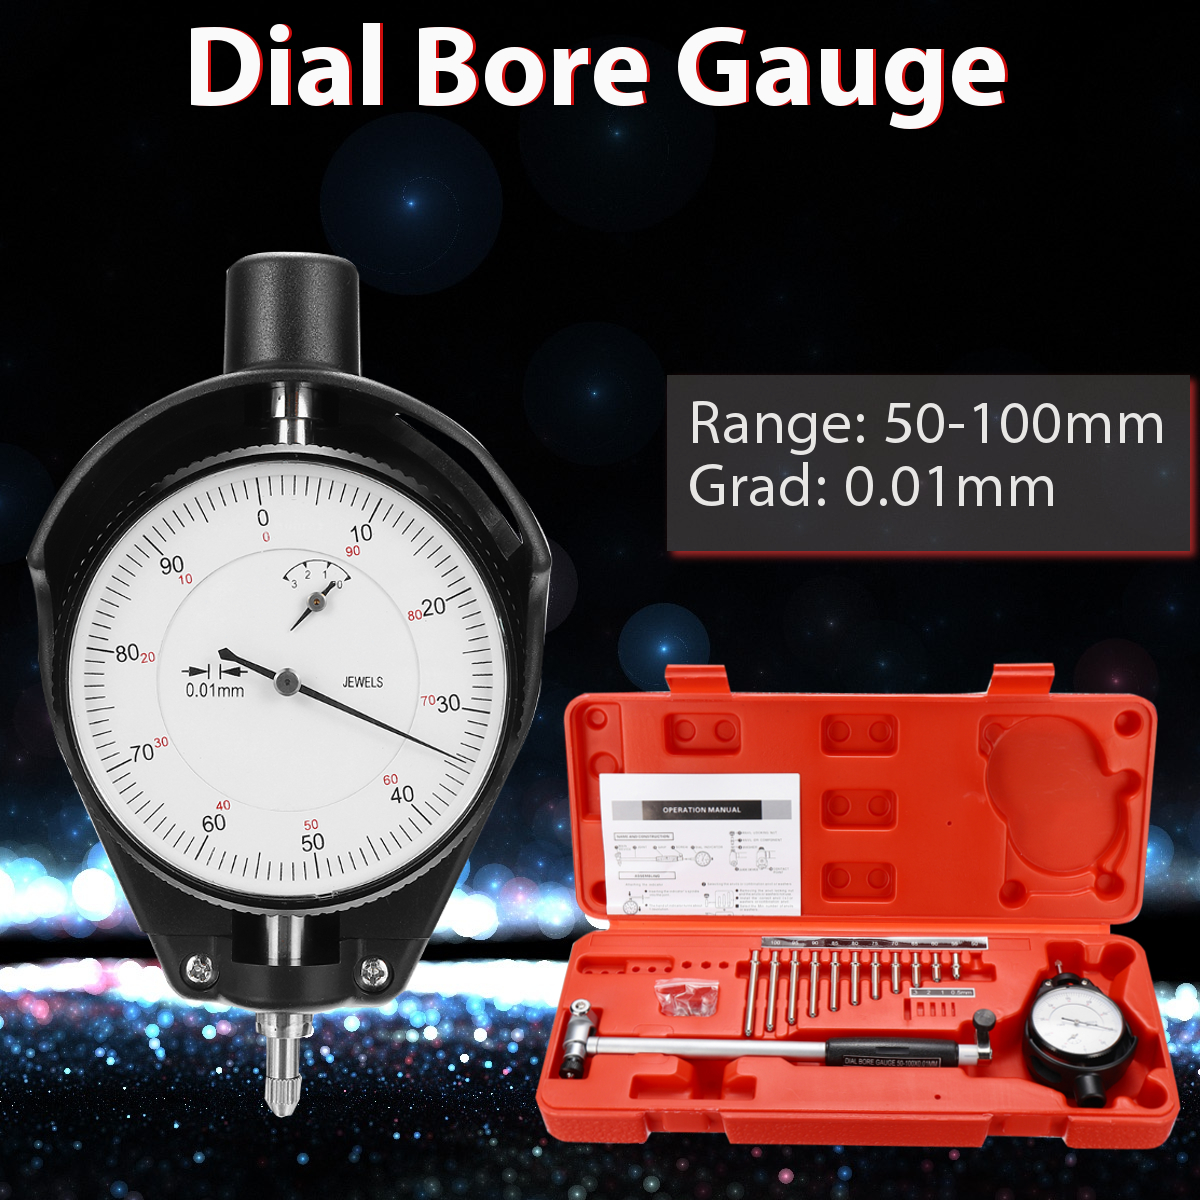 цена на 50-100mm Grad 0.01mm Steel+ABS Range Dial Bore Gauge Measuring Indicator Resolution Tool Movable Probe/Changeable Durability